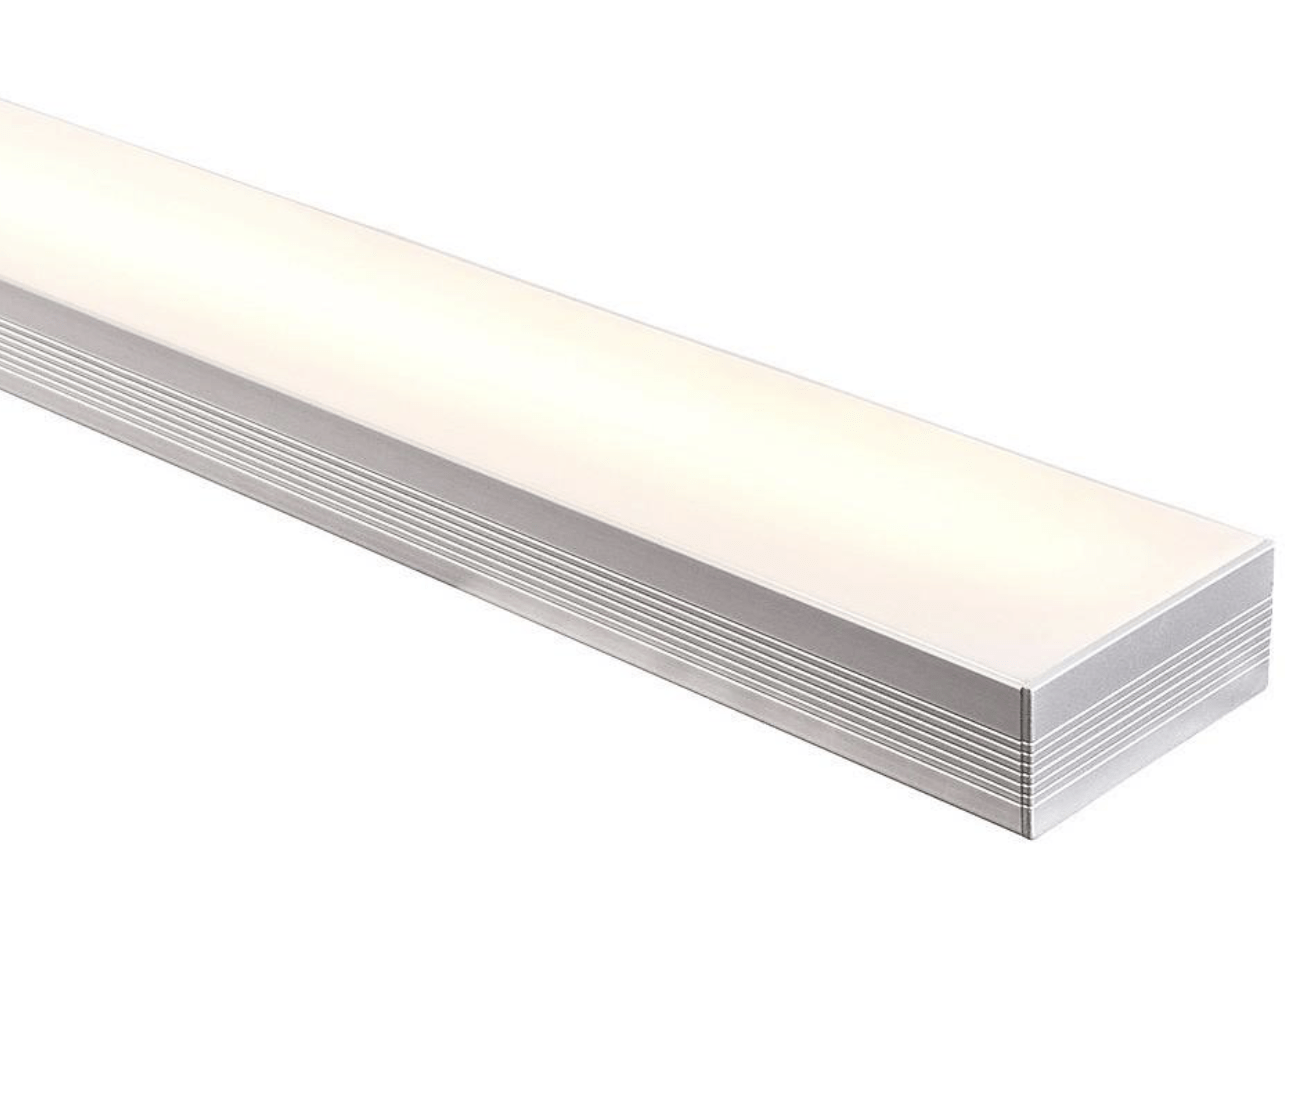 Profiles Surface Mounted Profile - Large Deep Square - HV9693-8035 lighting shops lighting stores LED lights  lighting designer